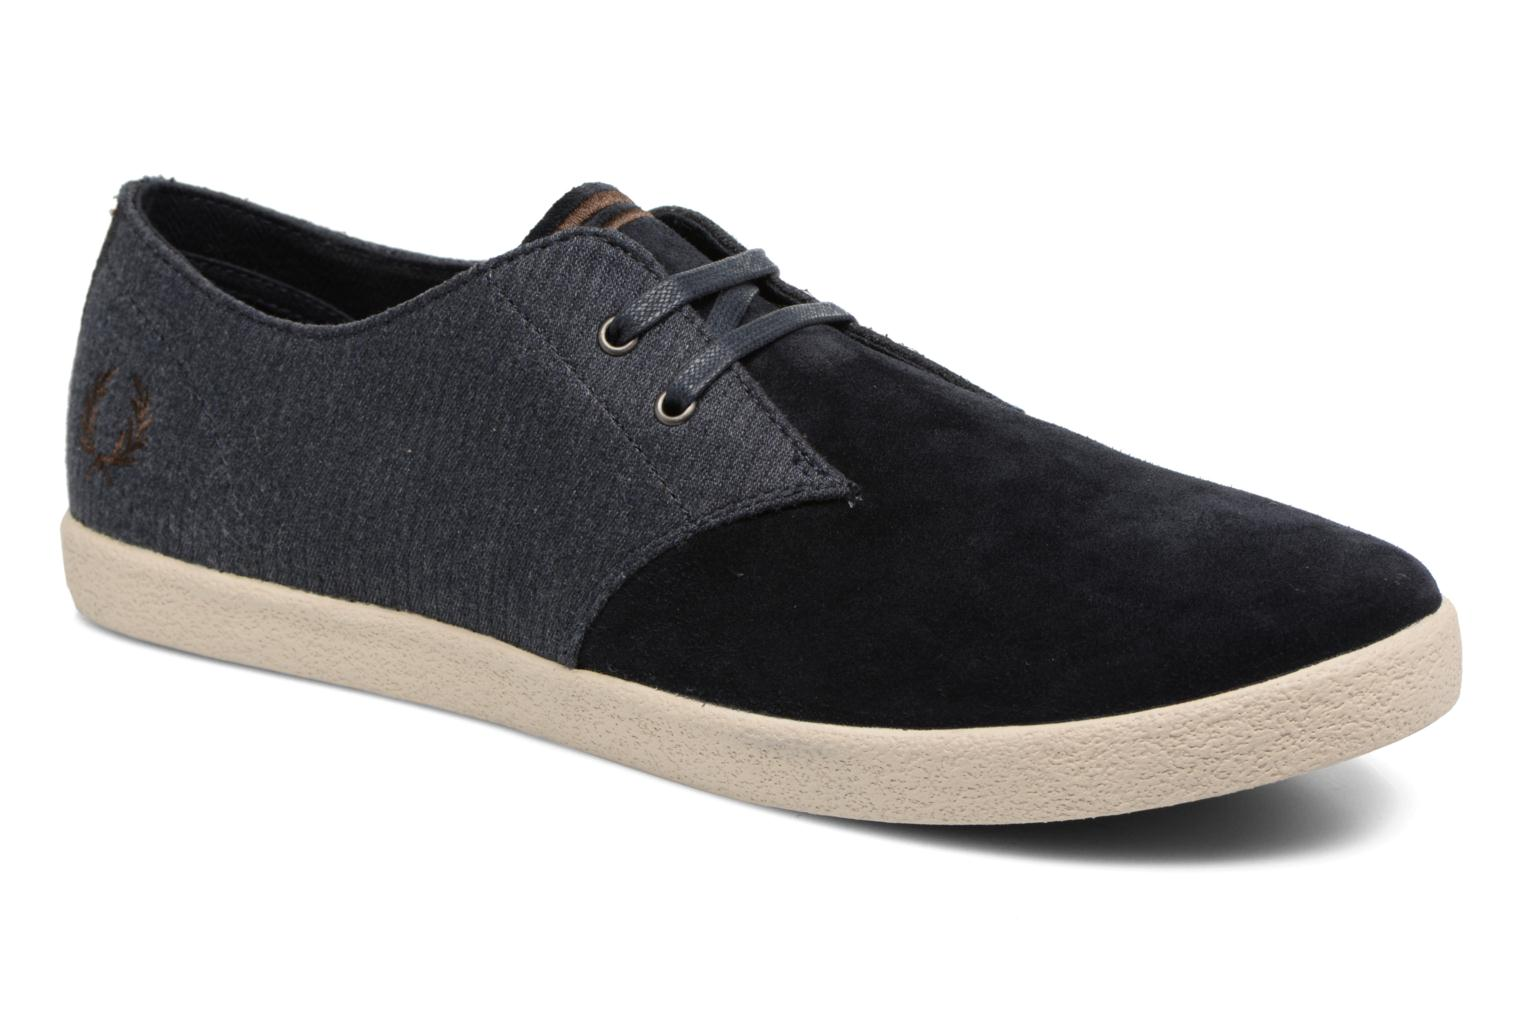 Fred Perry Byron Low Bedford Cord/ Suede Bas Prix Footlocker Finishline abordable Vente Pas Cher Vraiment 4CzOy